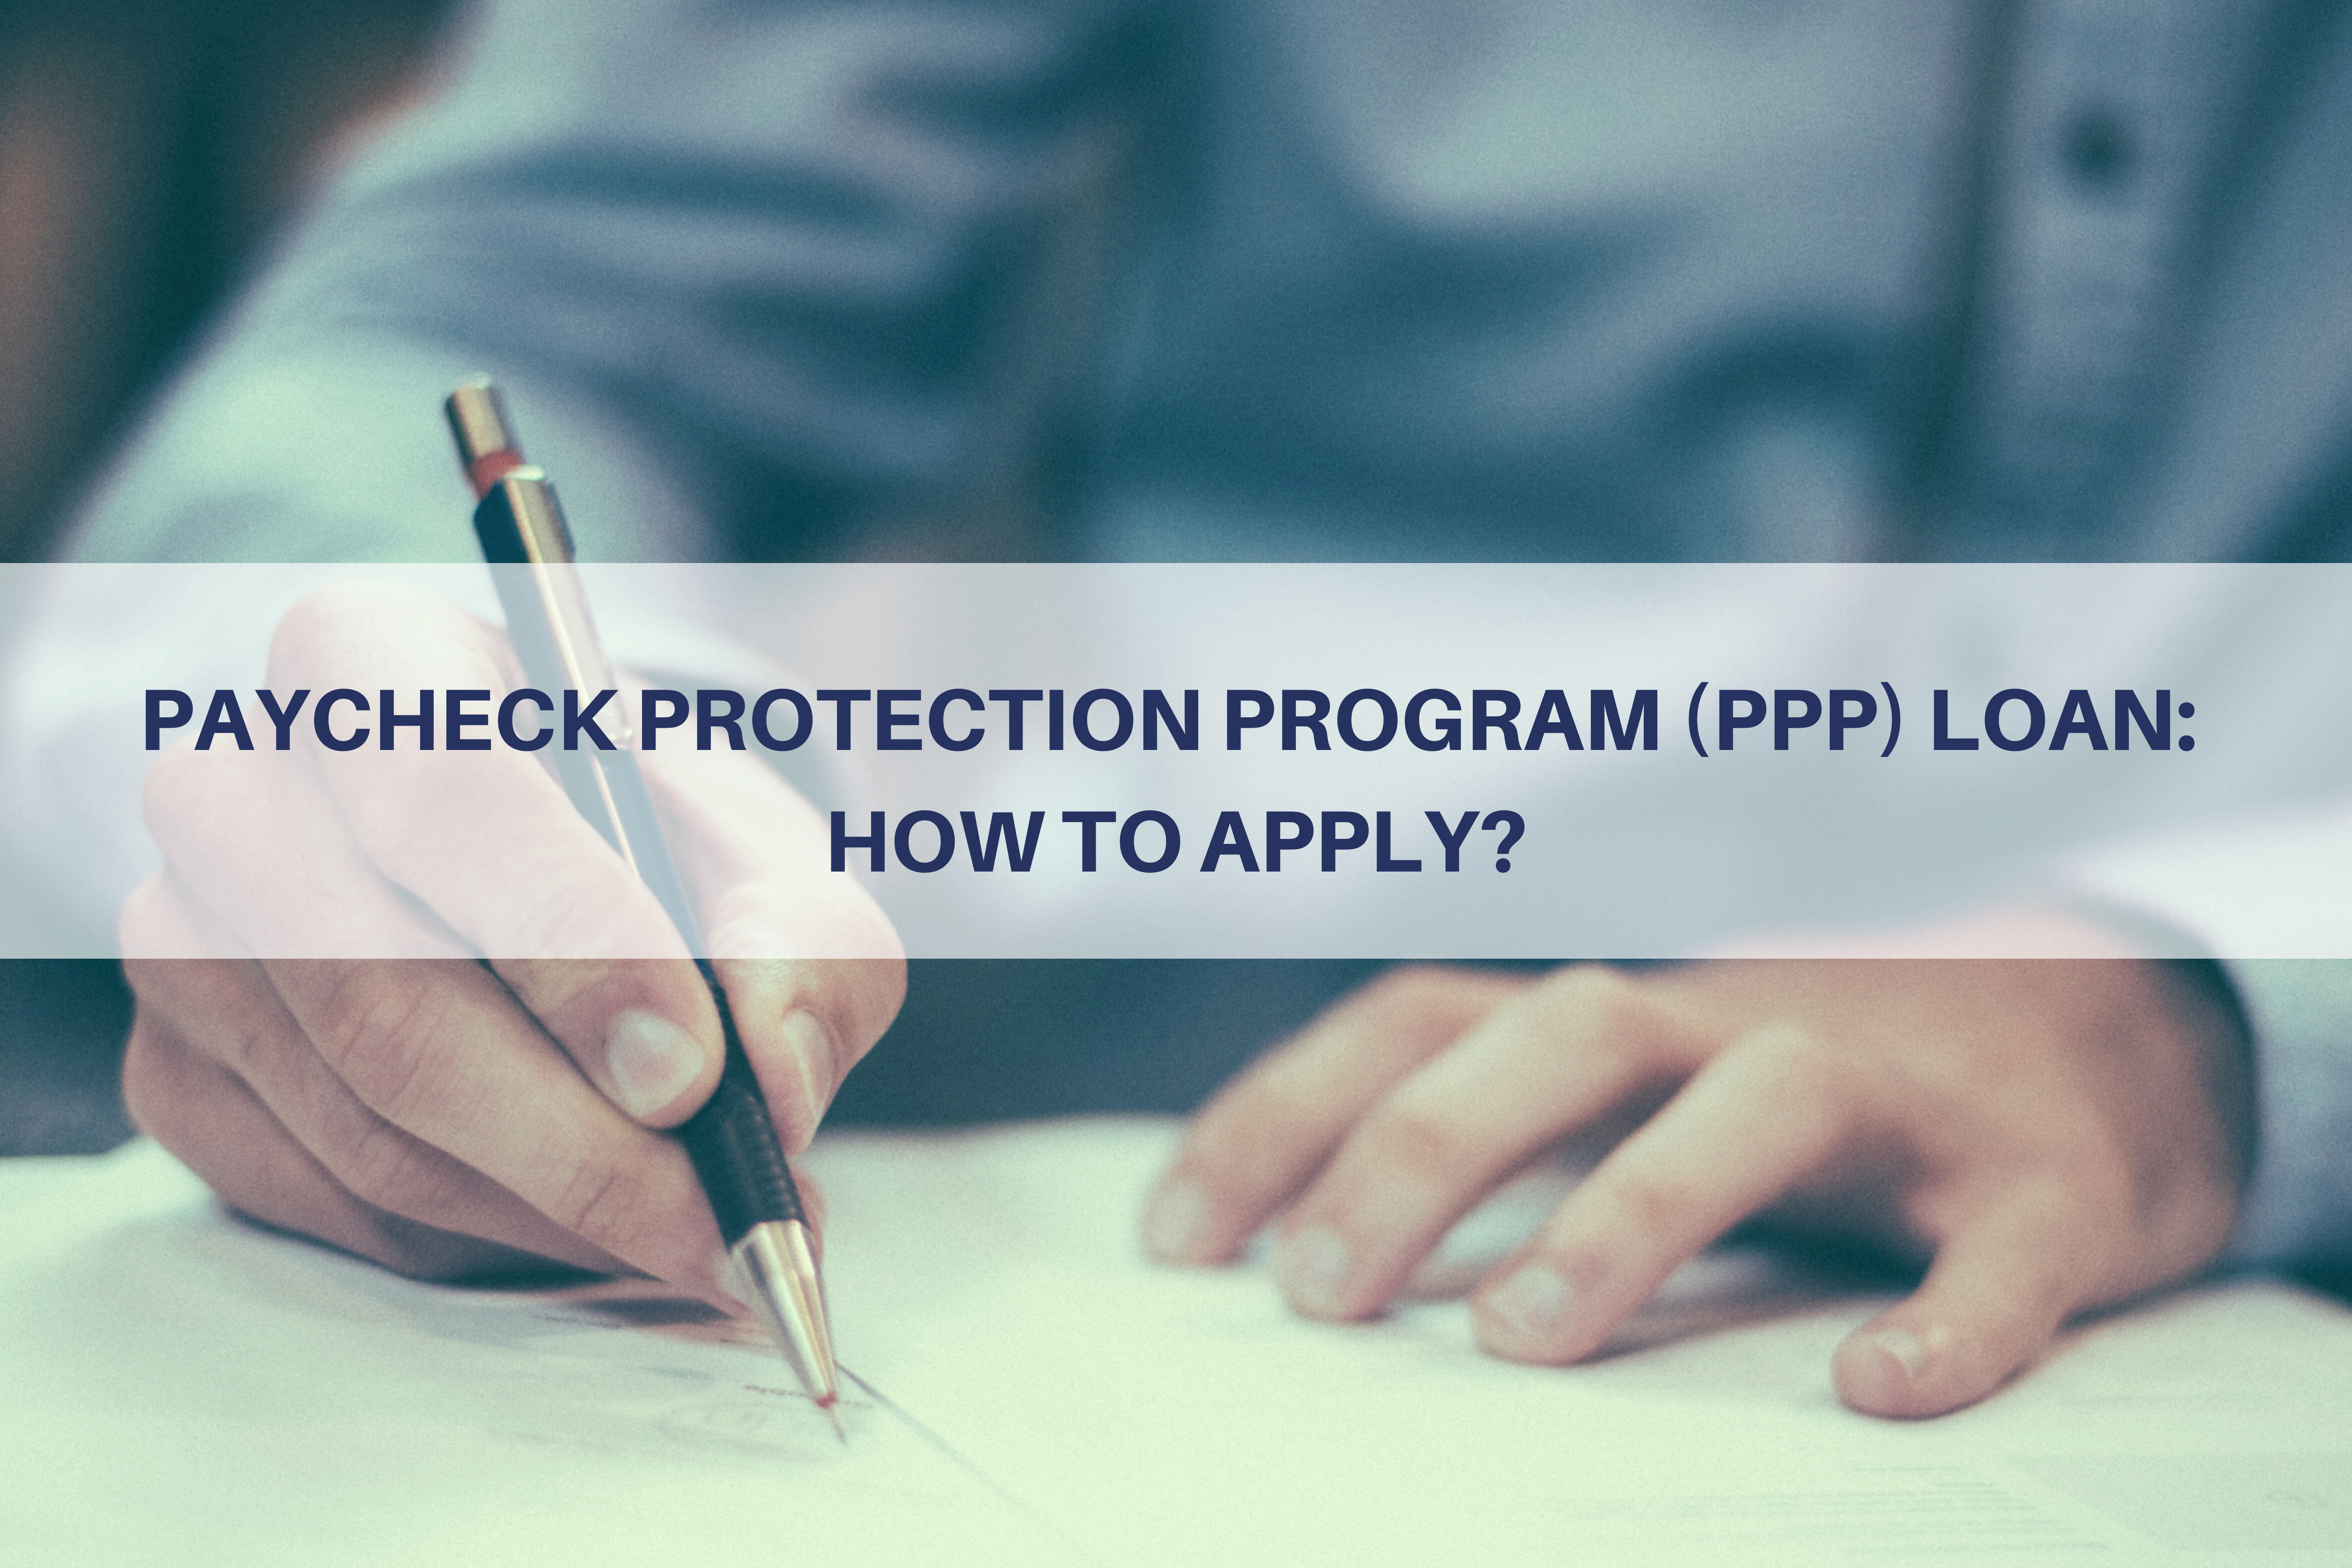 CARES Act - Paycheck Protection Program (PPP) Loan: How to Apply? Thumbnail